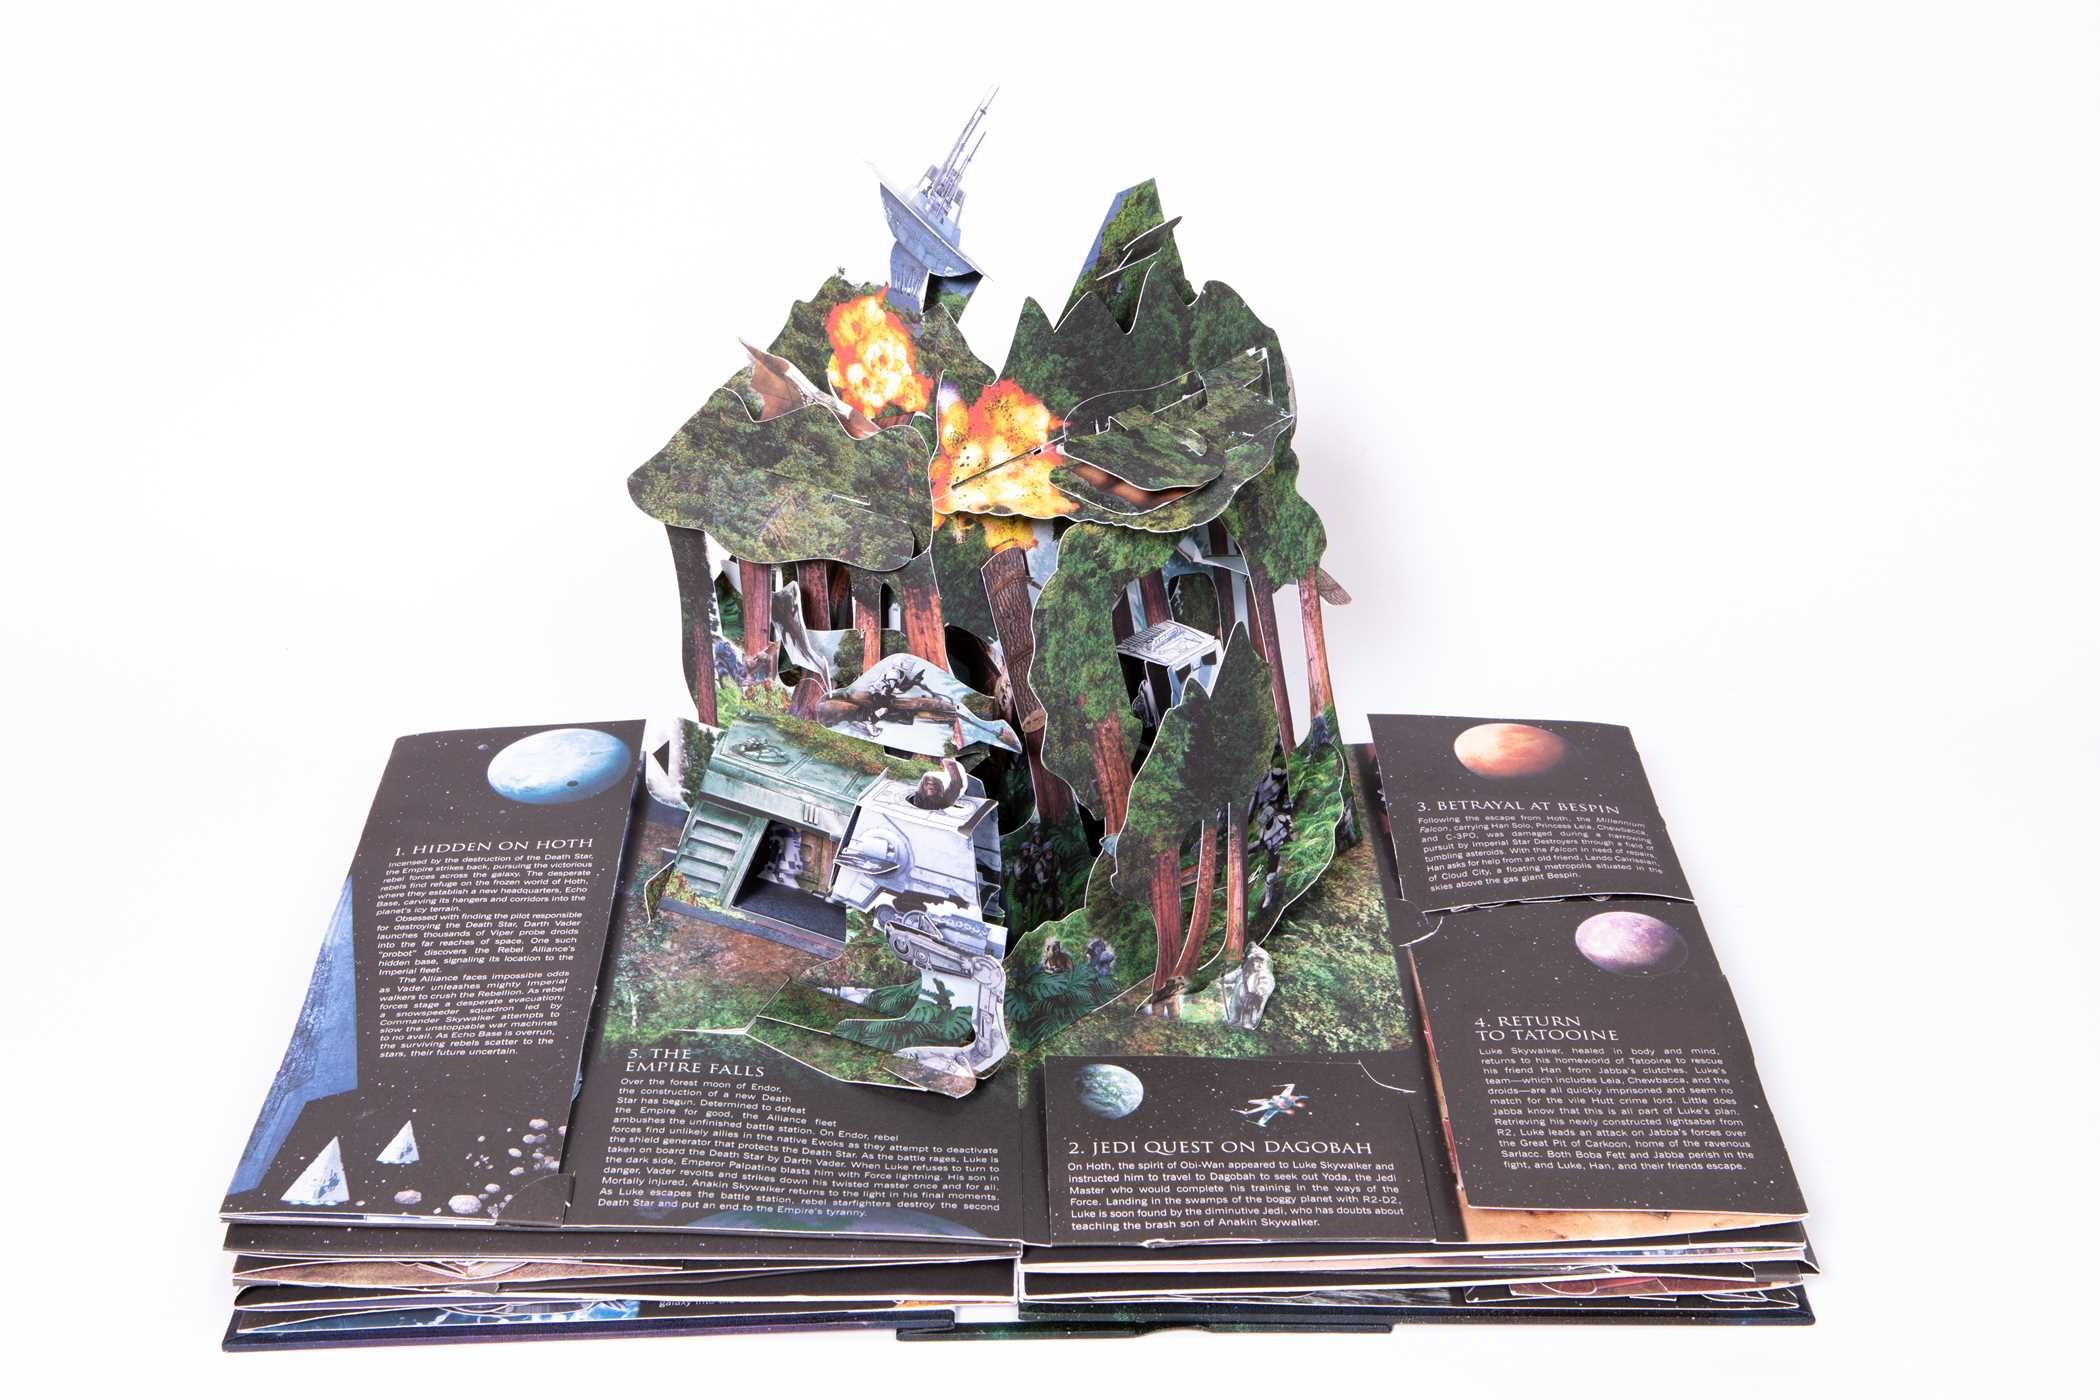 A sample page from the pop-up book